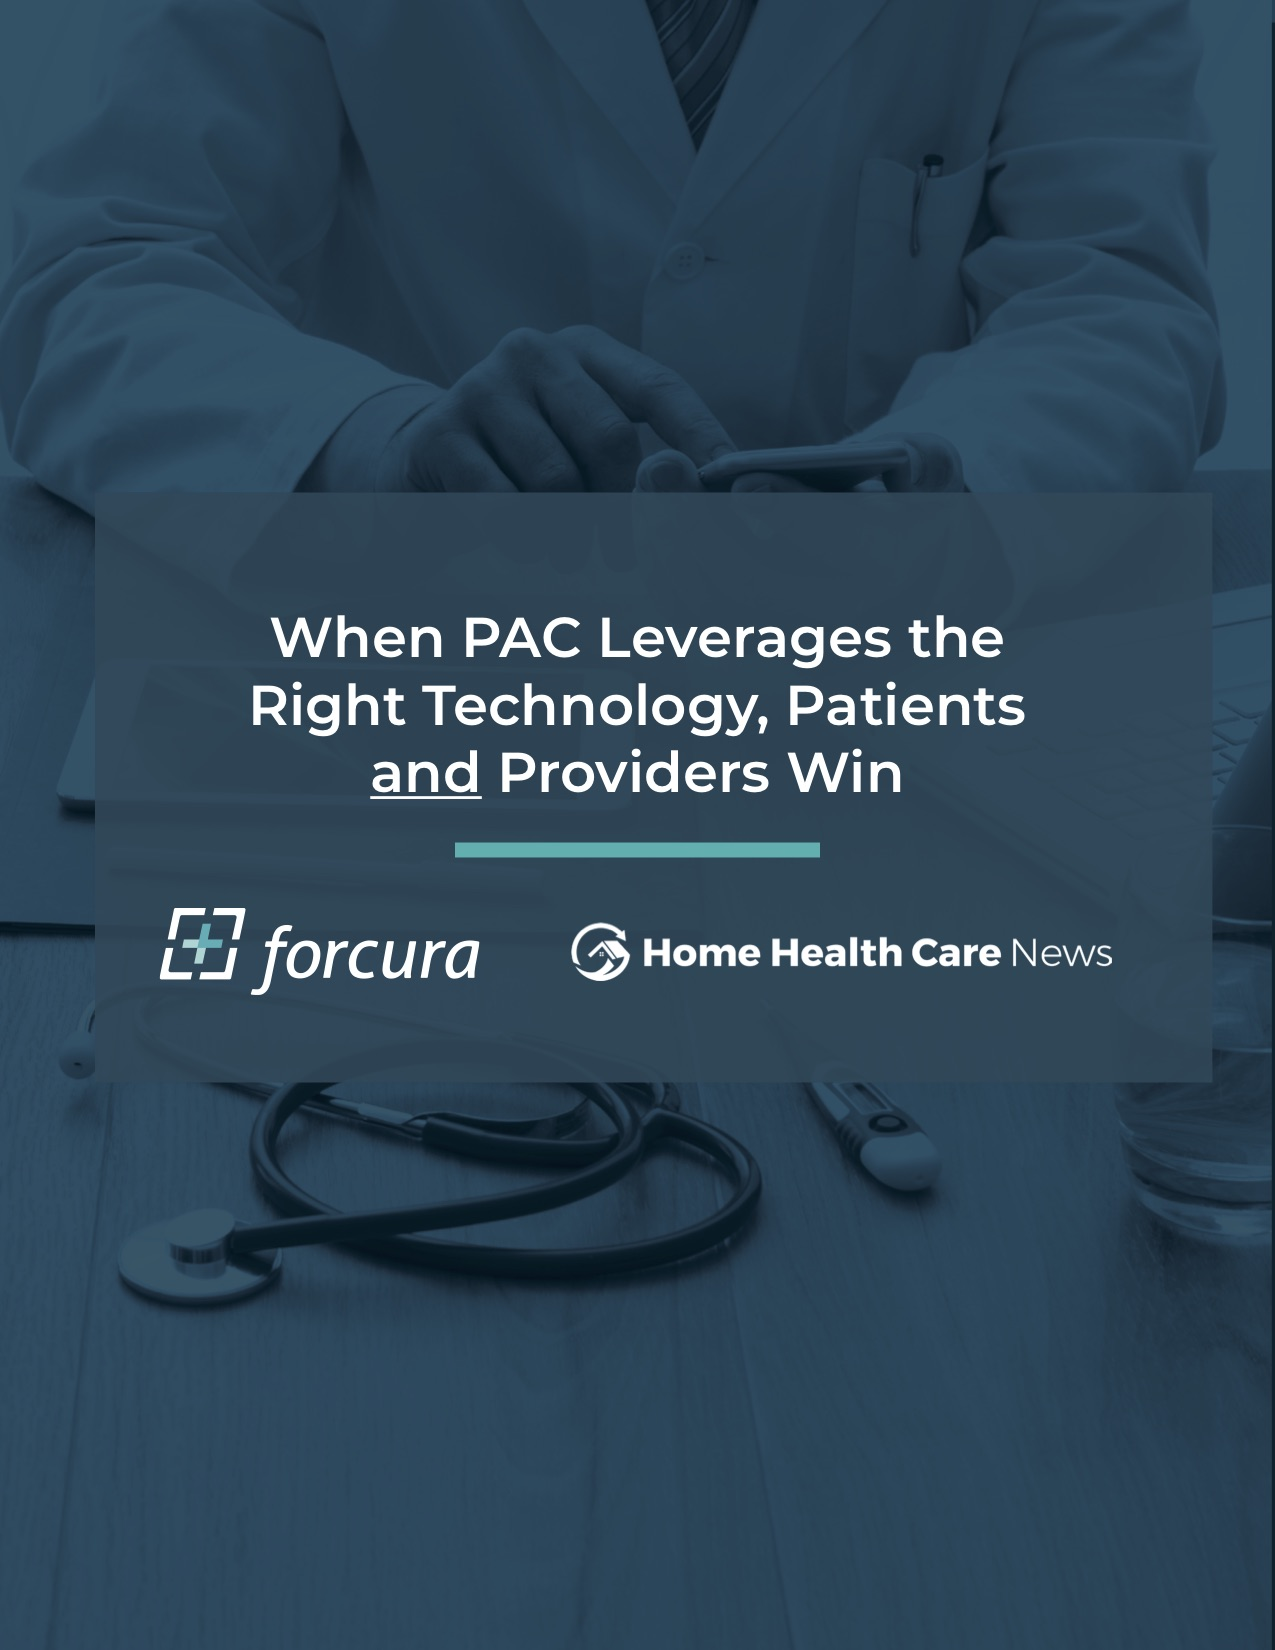 when-pac-leverages-right-technology-patients-providers-win copy